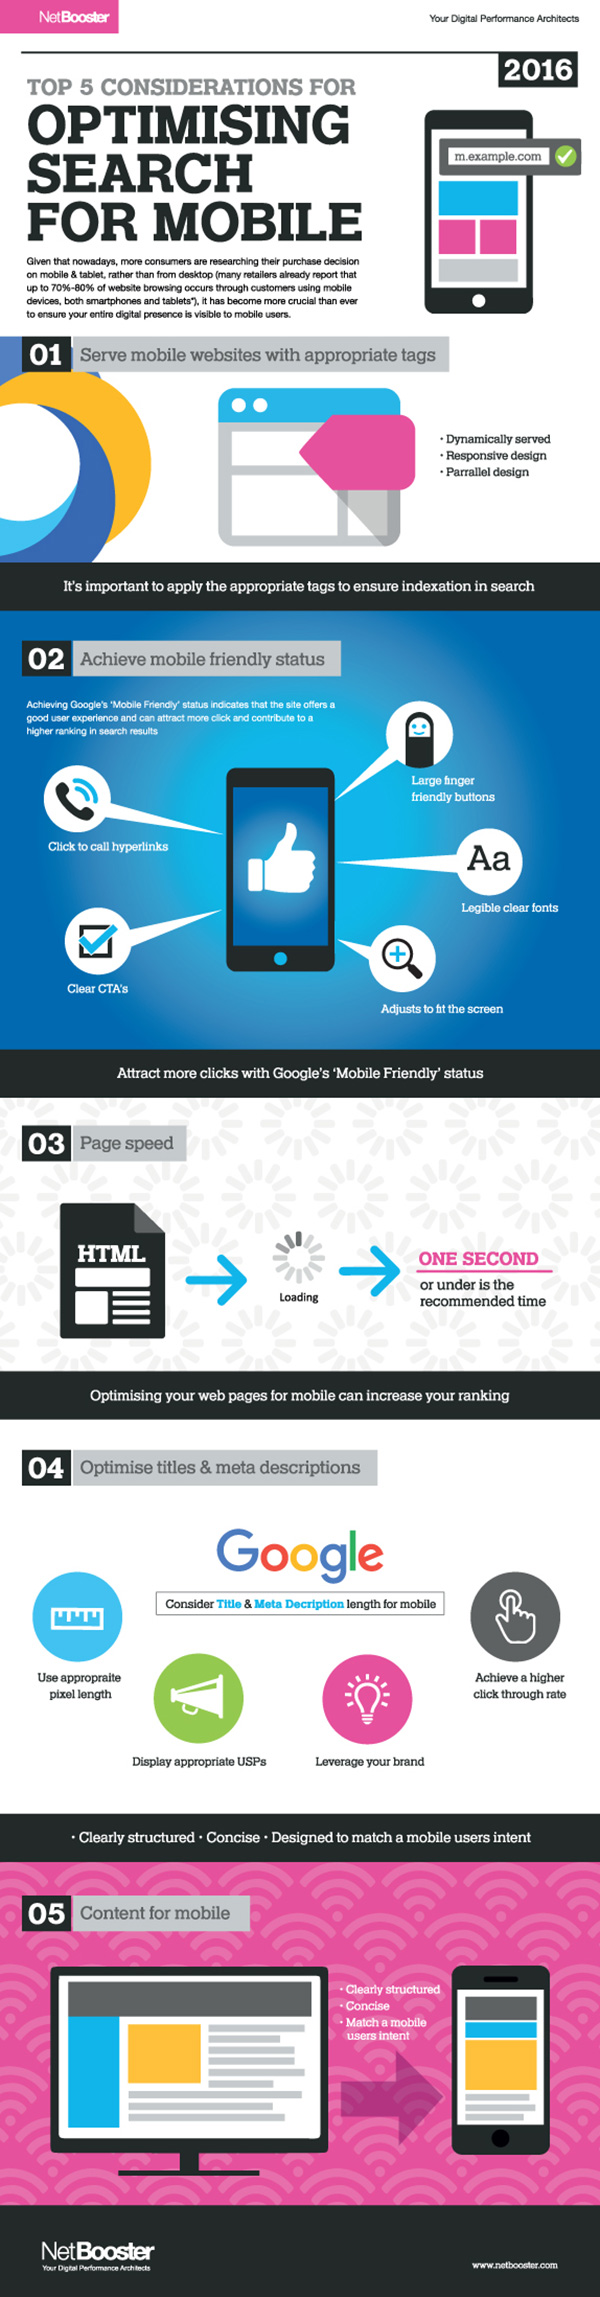 Optimising search for mobile